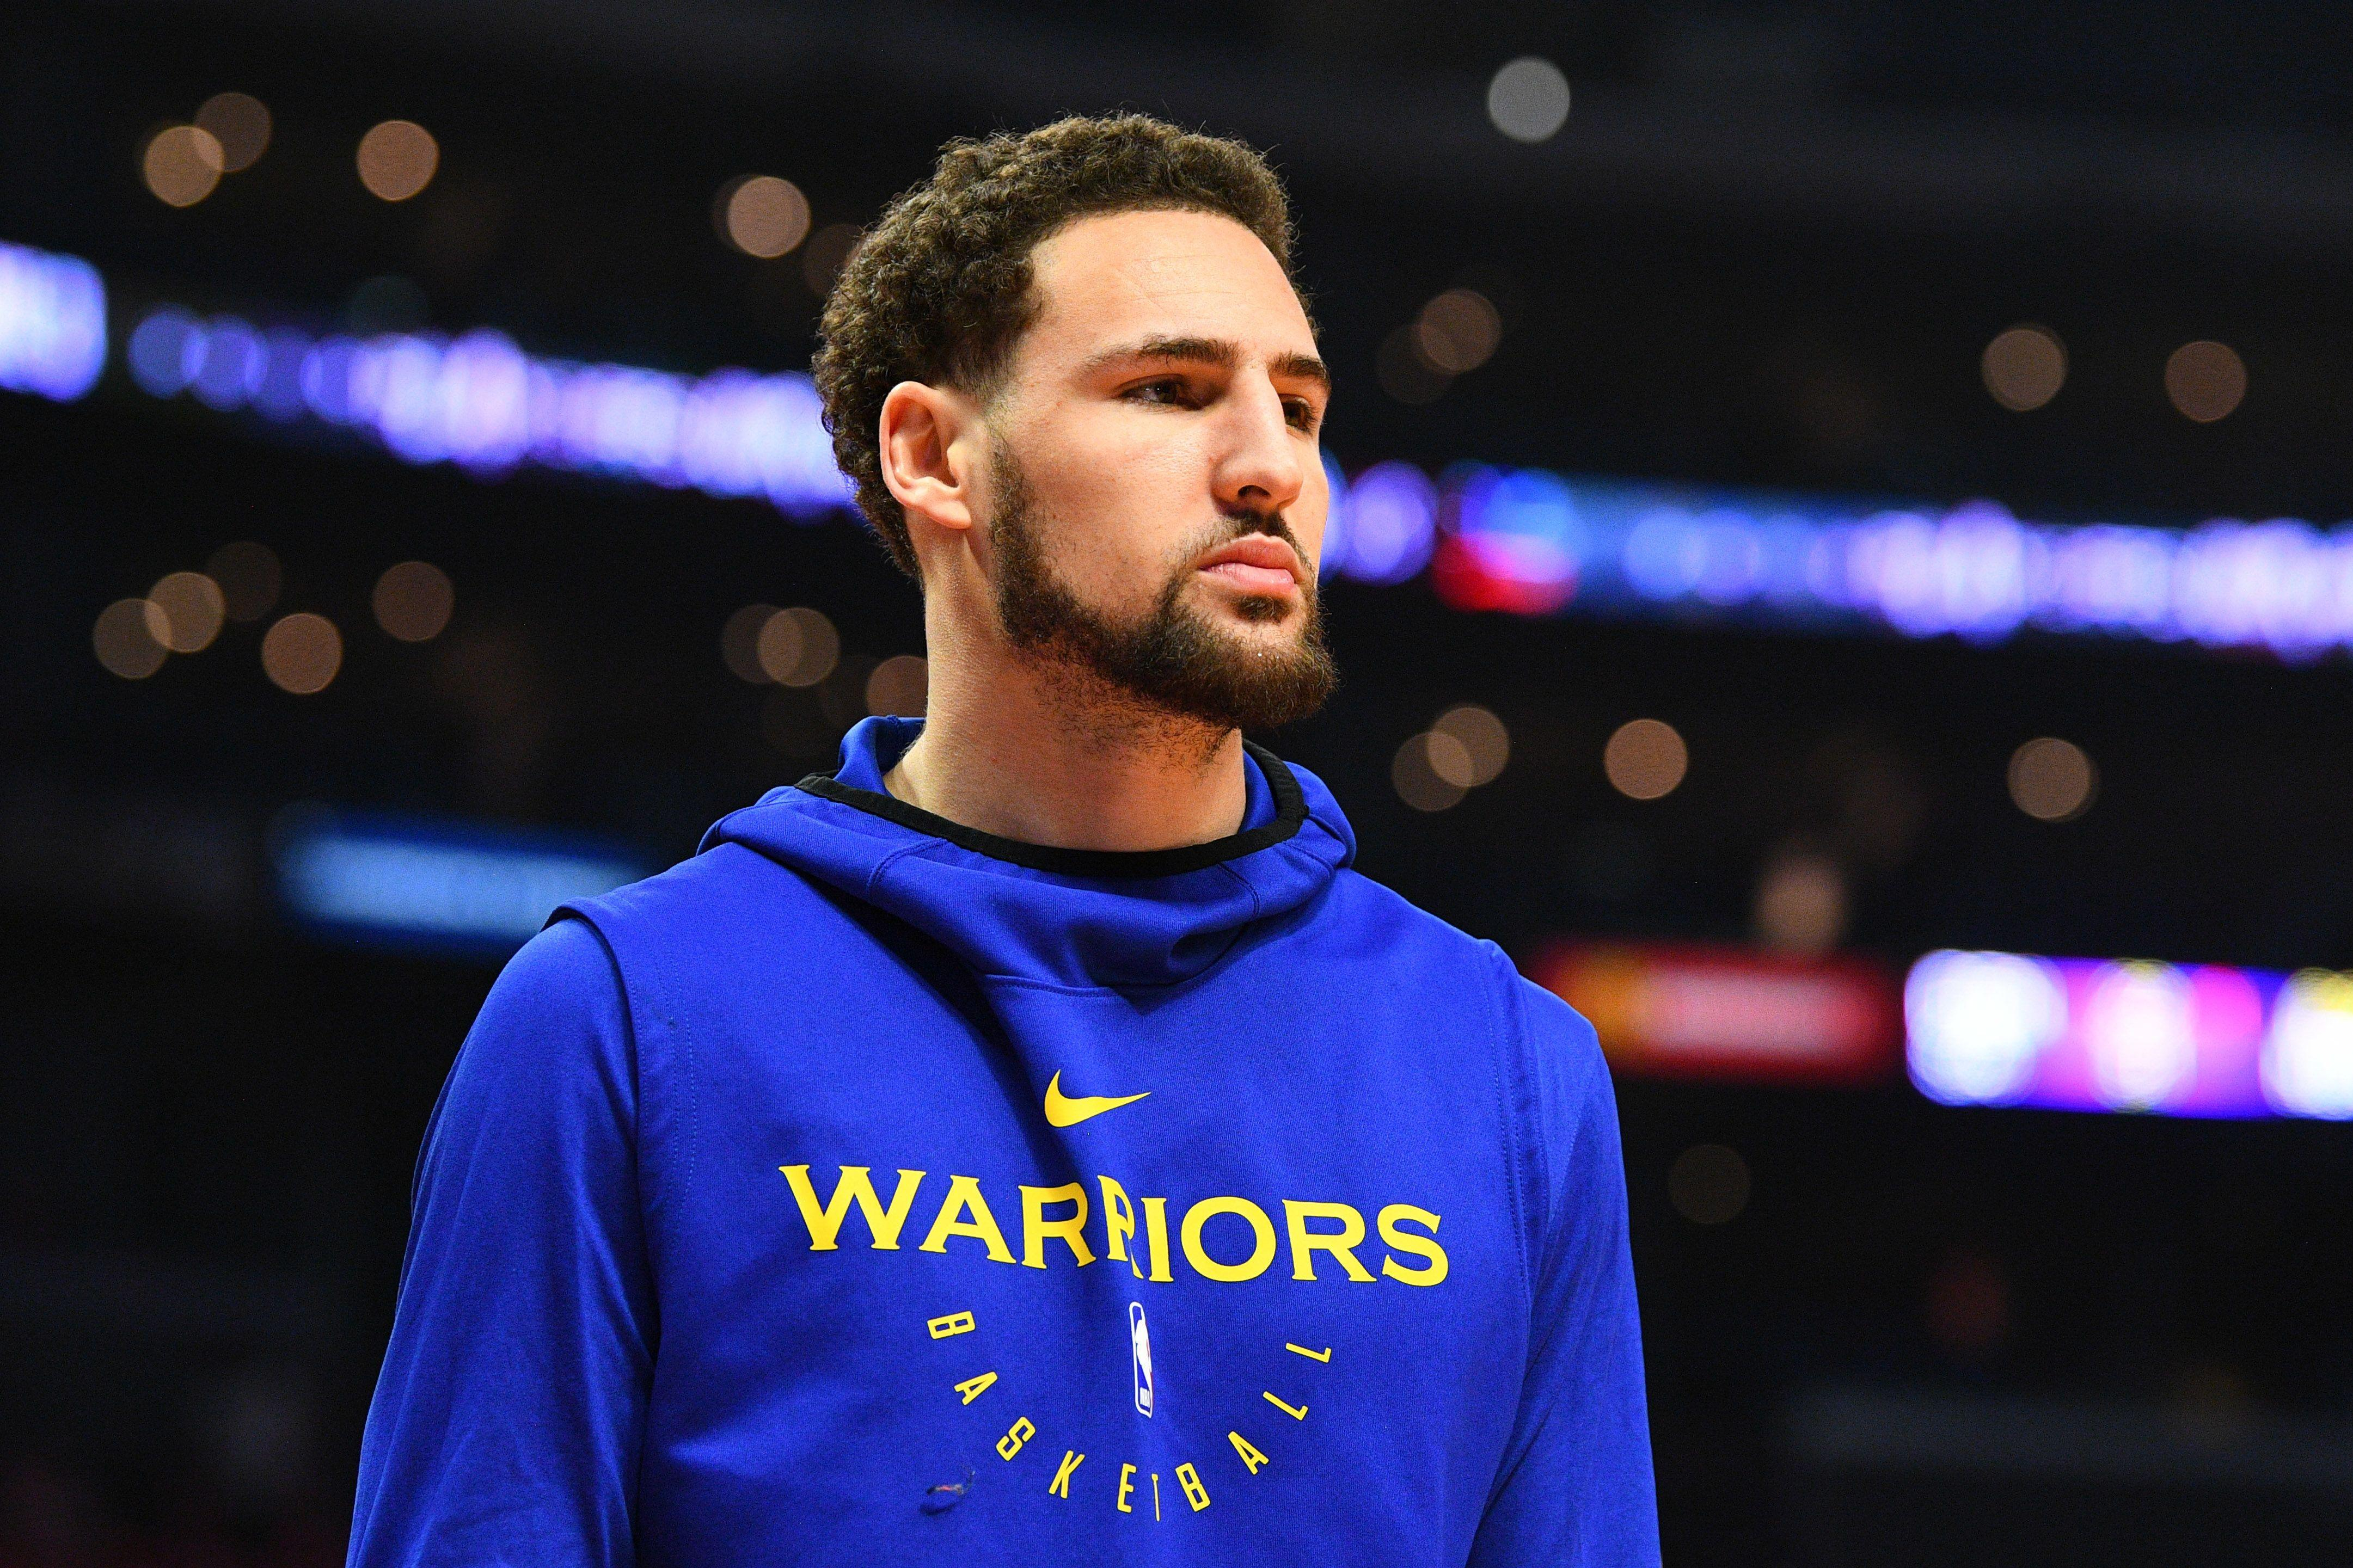 Klay Thompson jumped into the ocean to 'get right' before Game 4